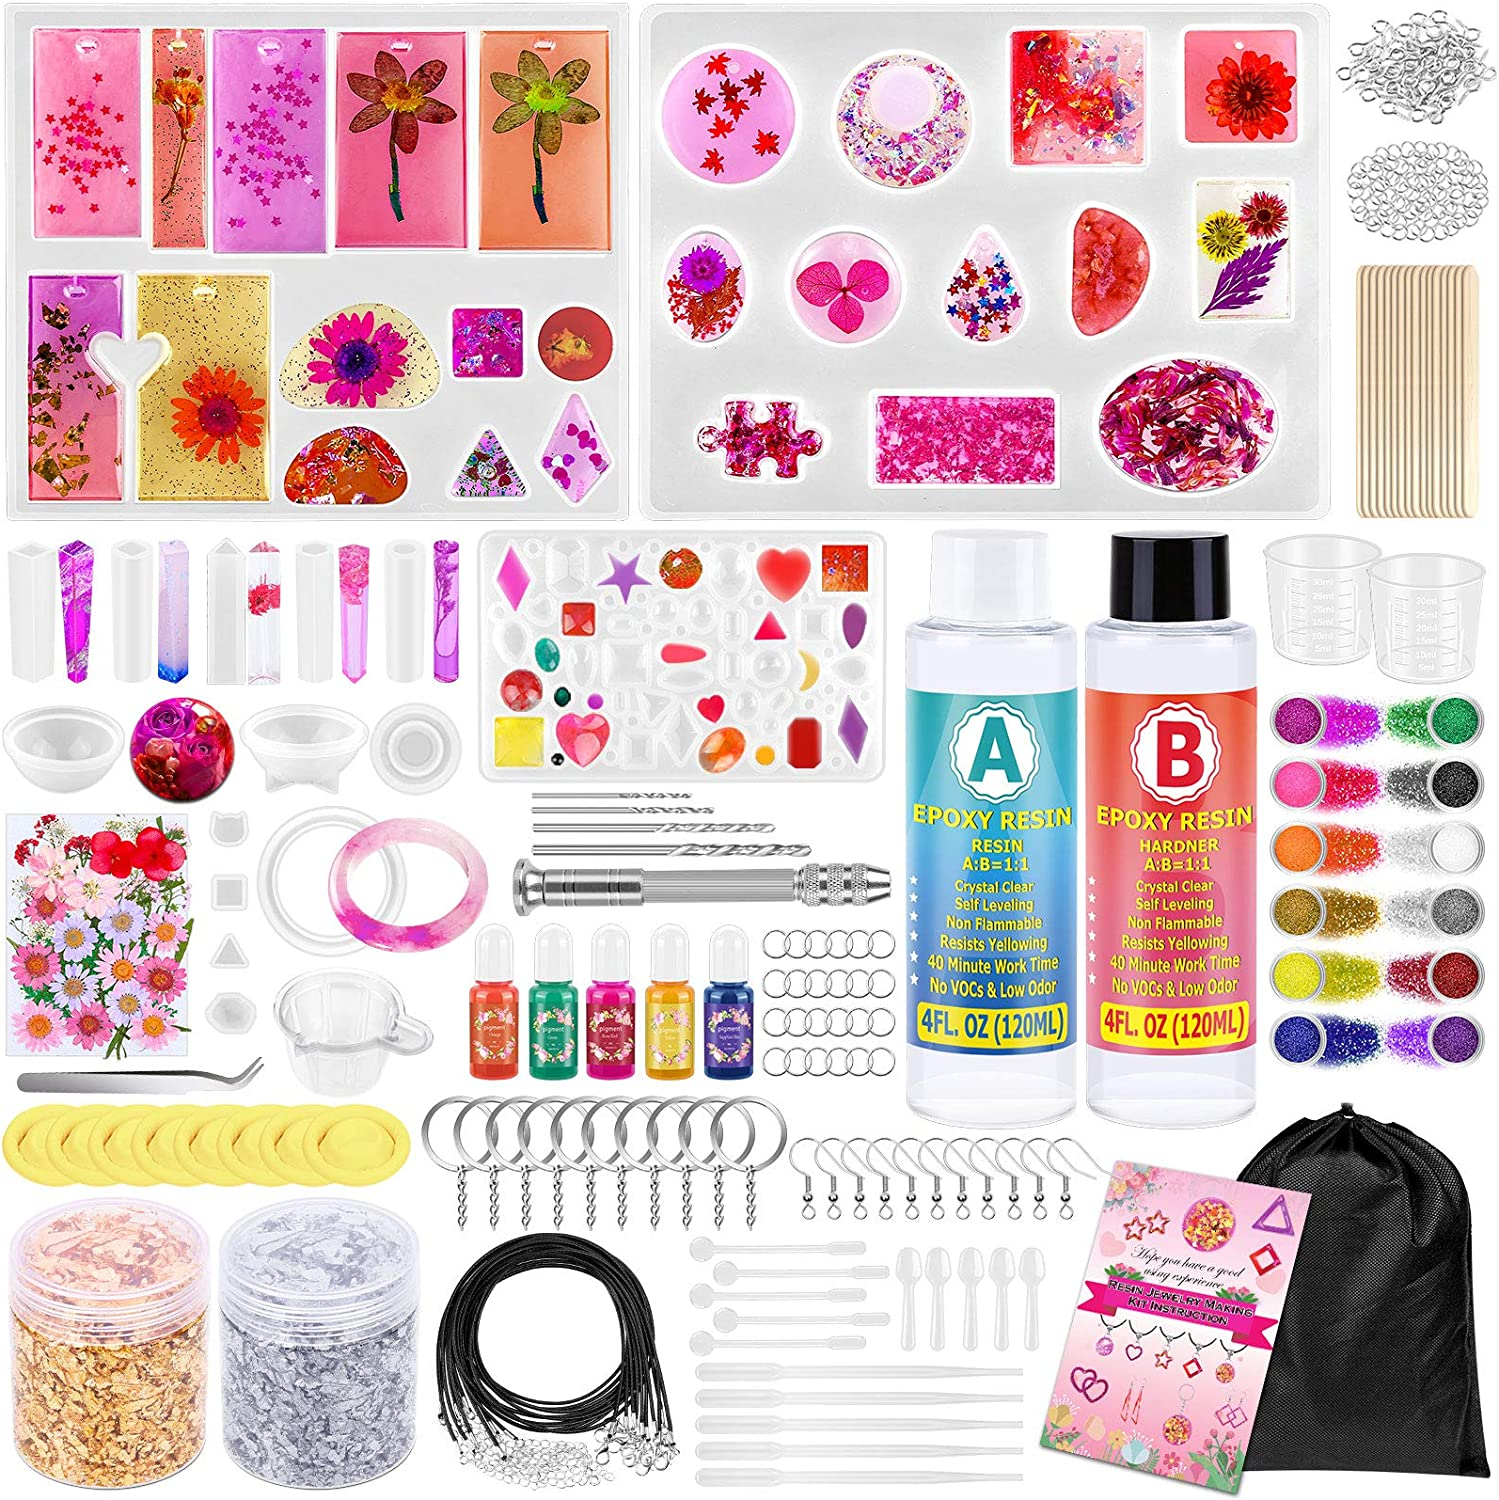 Resin Molds Kit Limited Special Price Indefinitely for Jewelry Supplies Epoxy Pcs Making 270